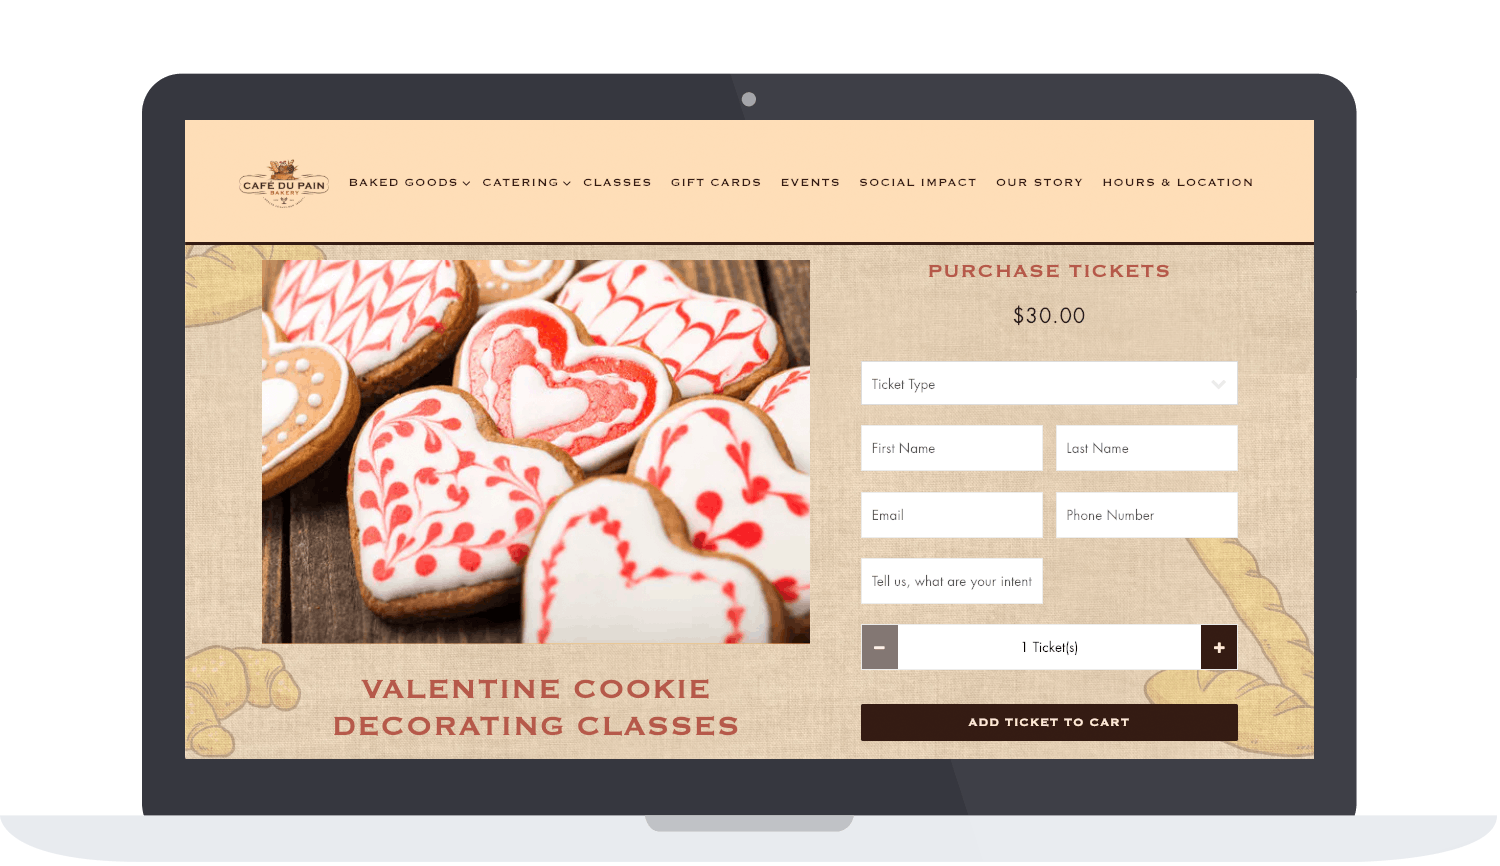 Café Du Pain's classes page on their website for their Valentine's Day cookie decorating classes, with a form that allows visitors to buy tickets